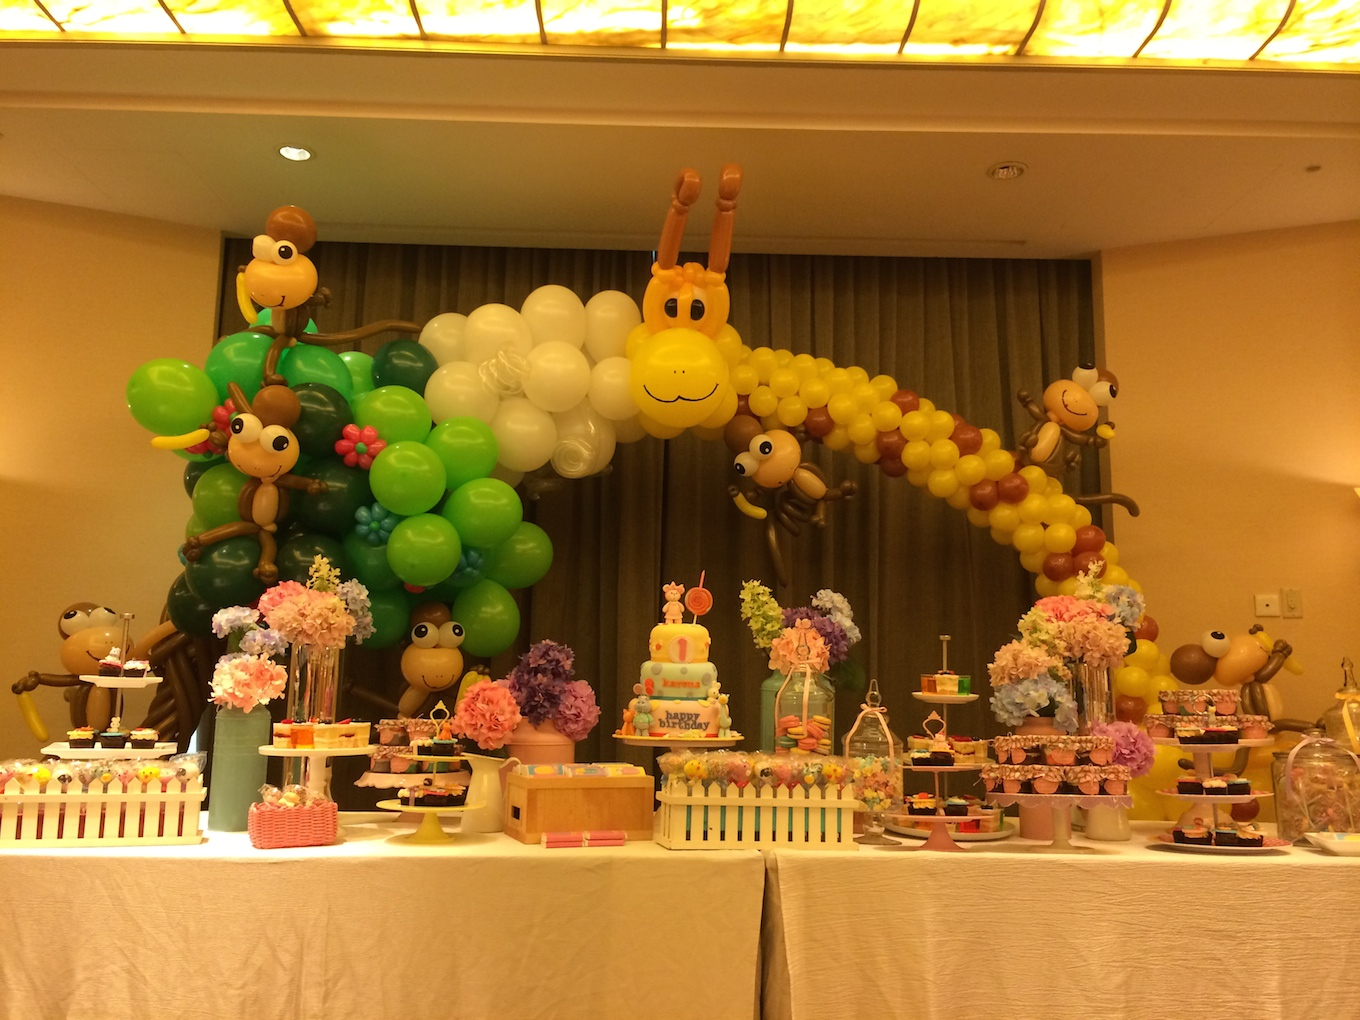 Balloon-Decorations-for-Birthday-Party